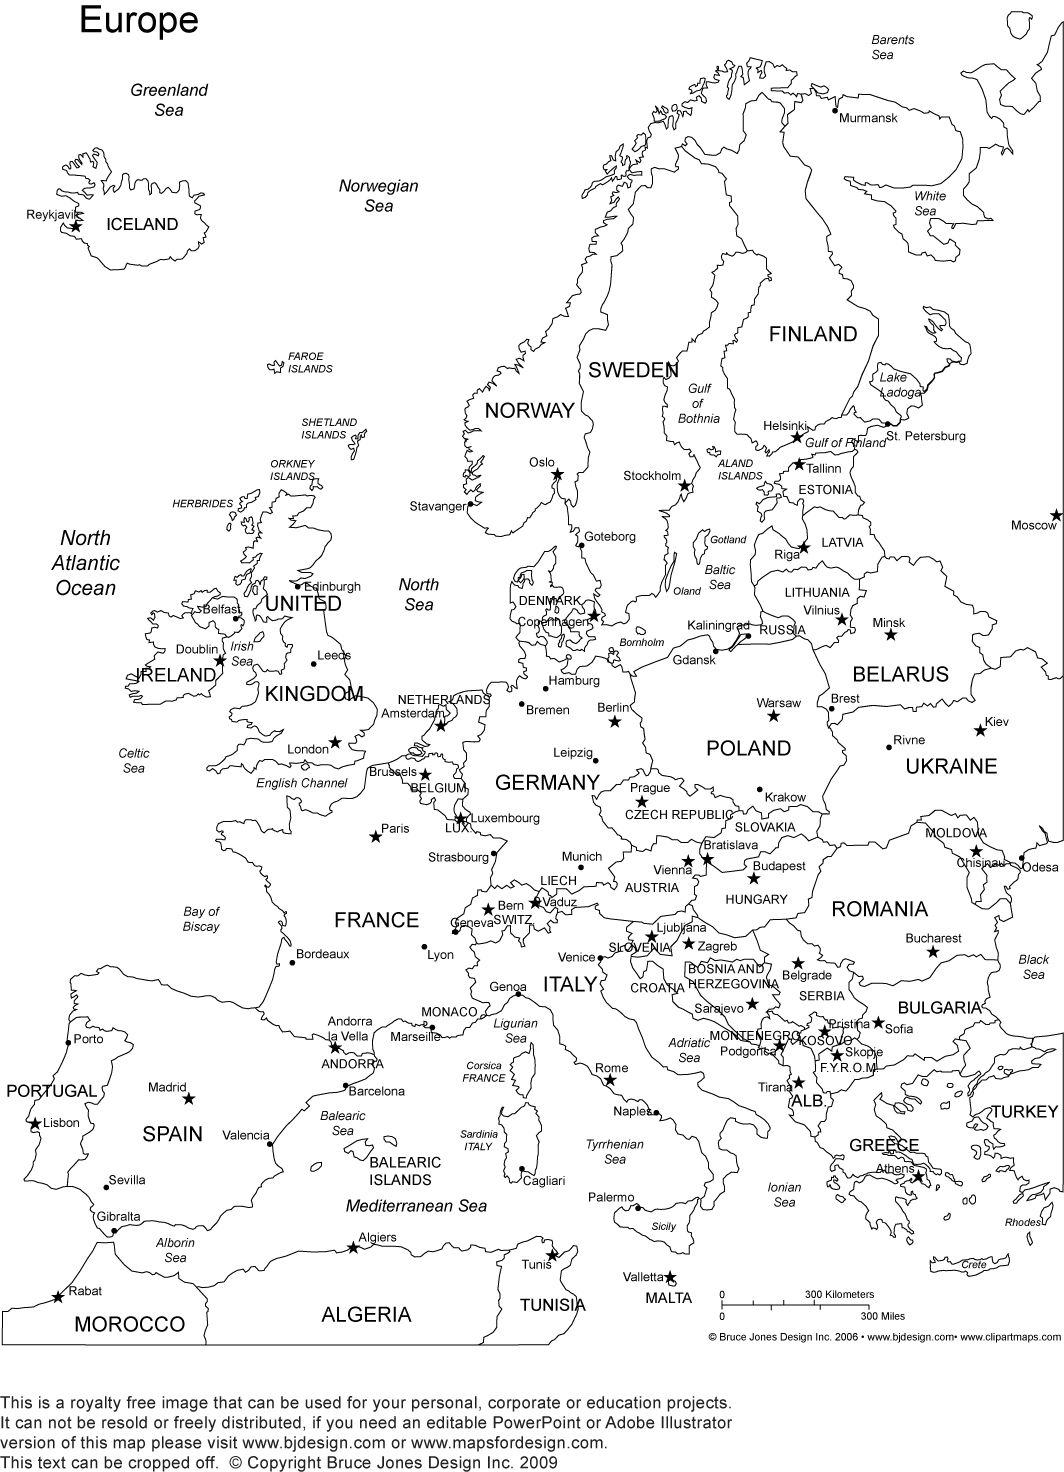 Europe Printable Blank Map Royalty Free, jpg (as well as other ...